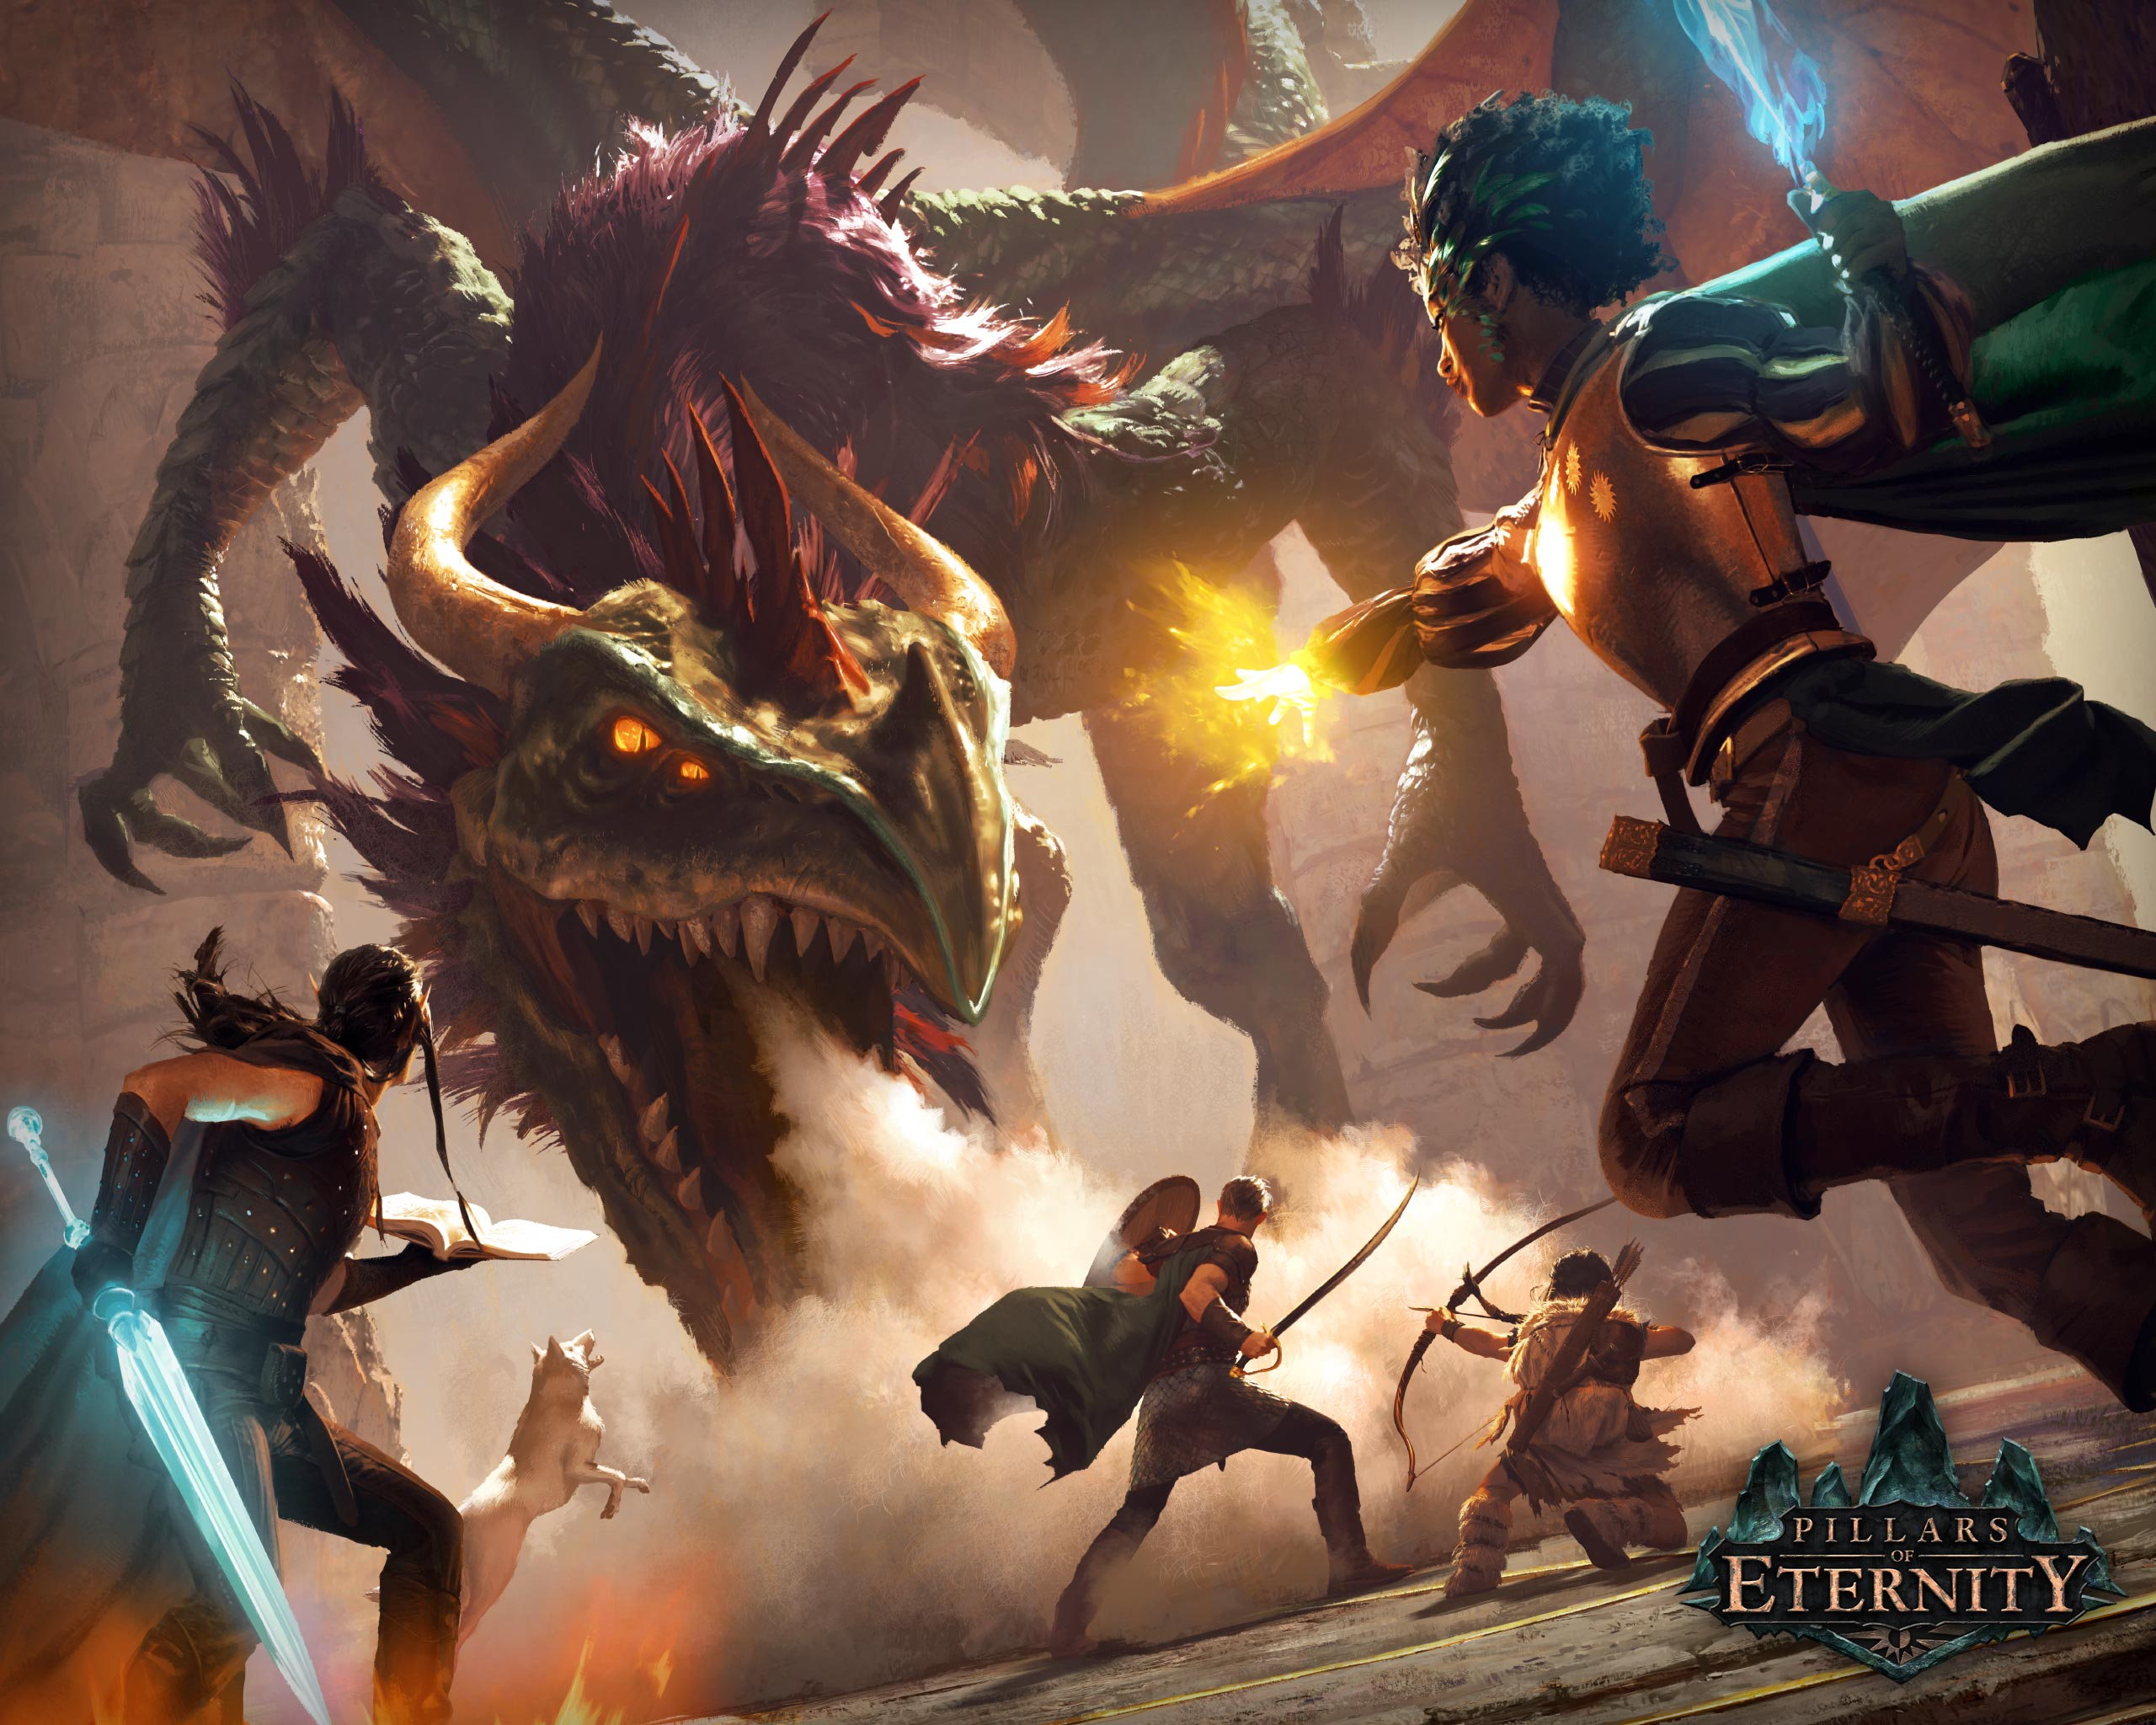 Pillars Of Eternity Wallpaper: Sky Dragon Battle